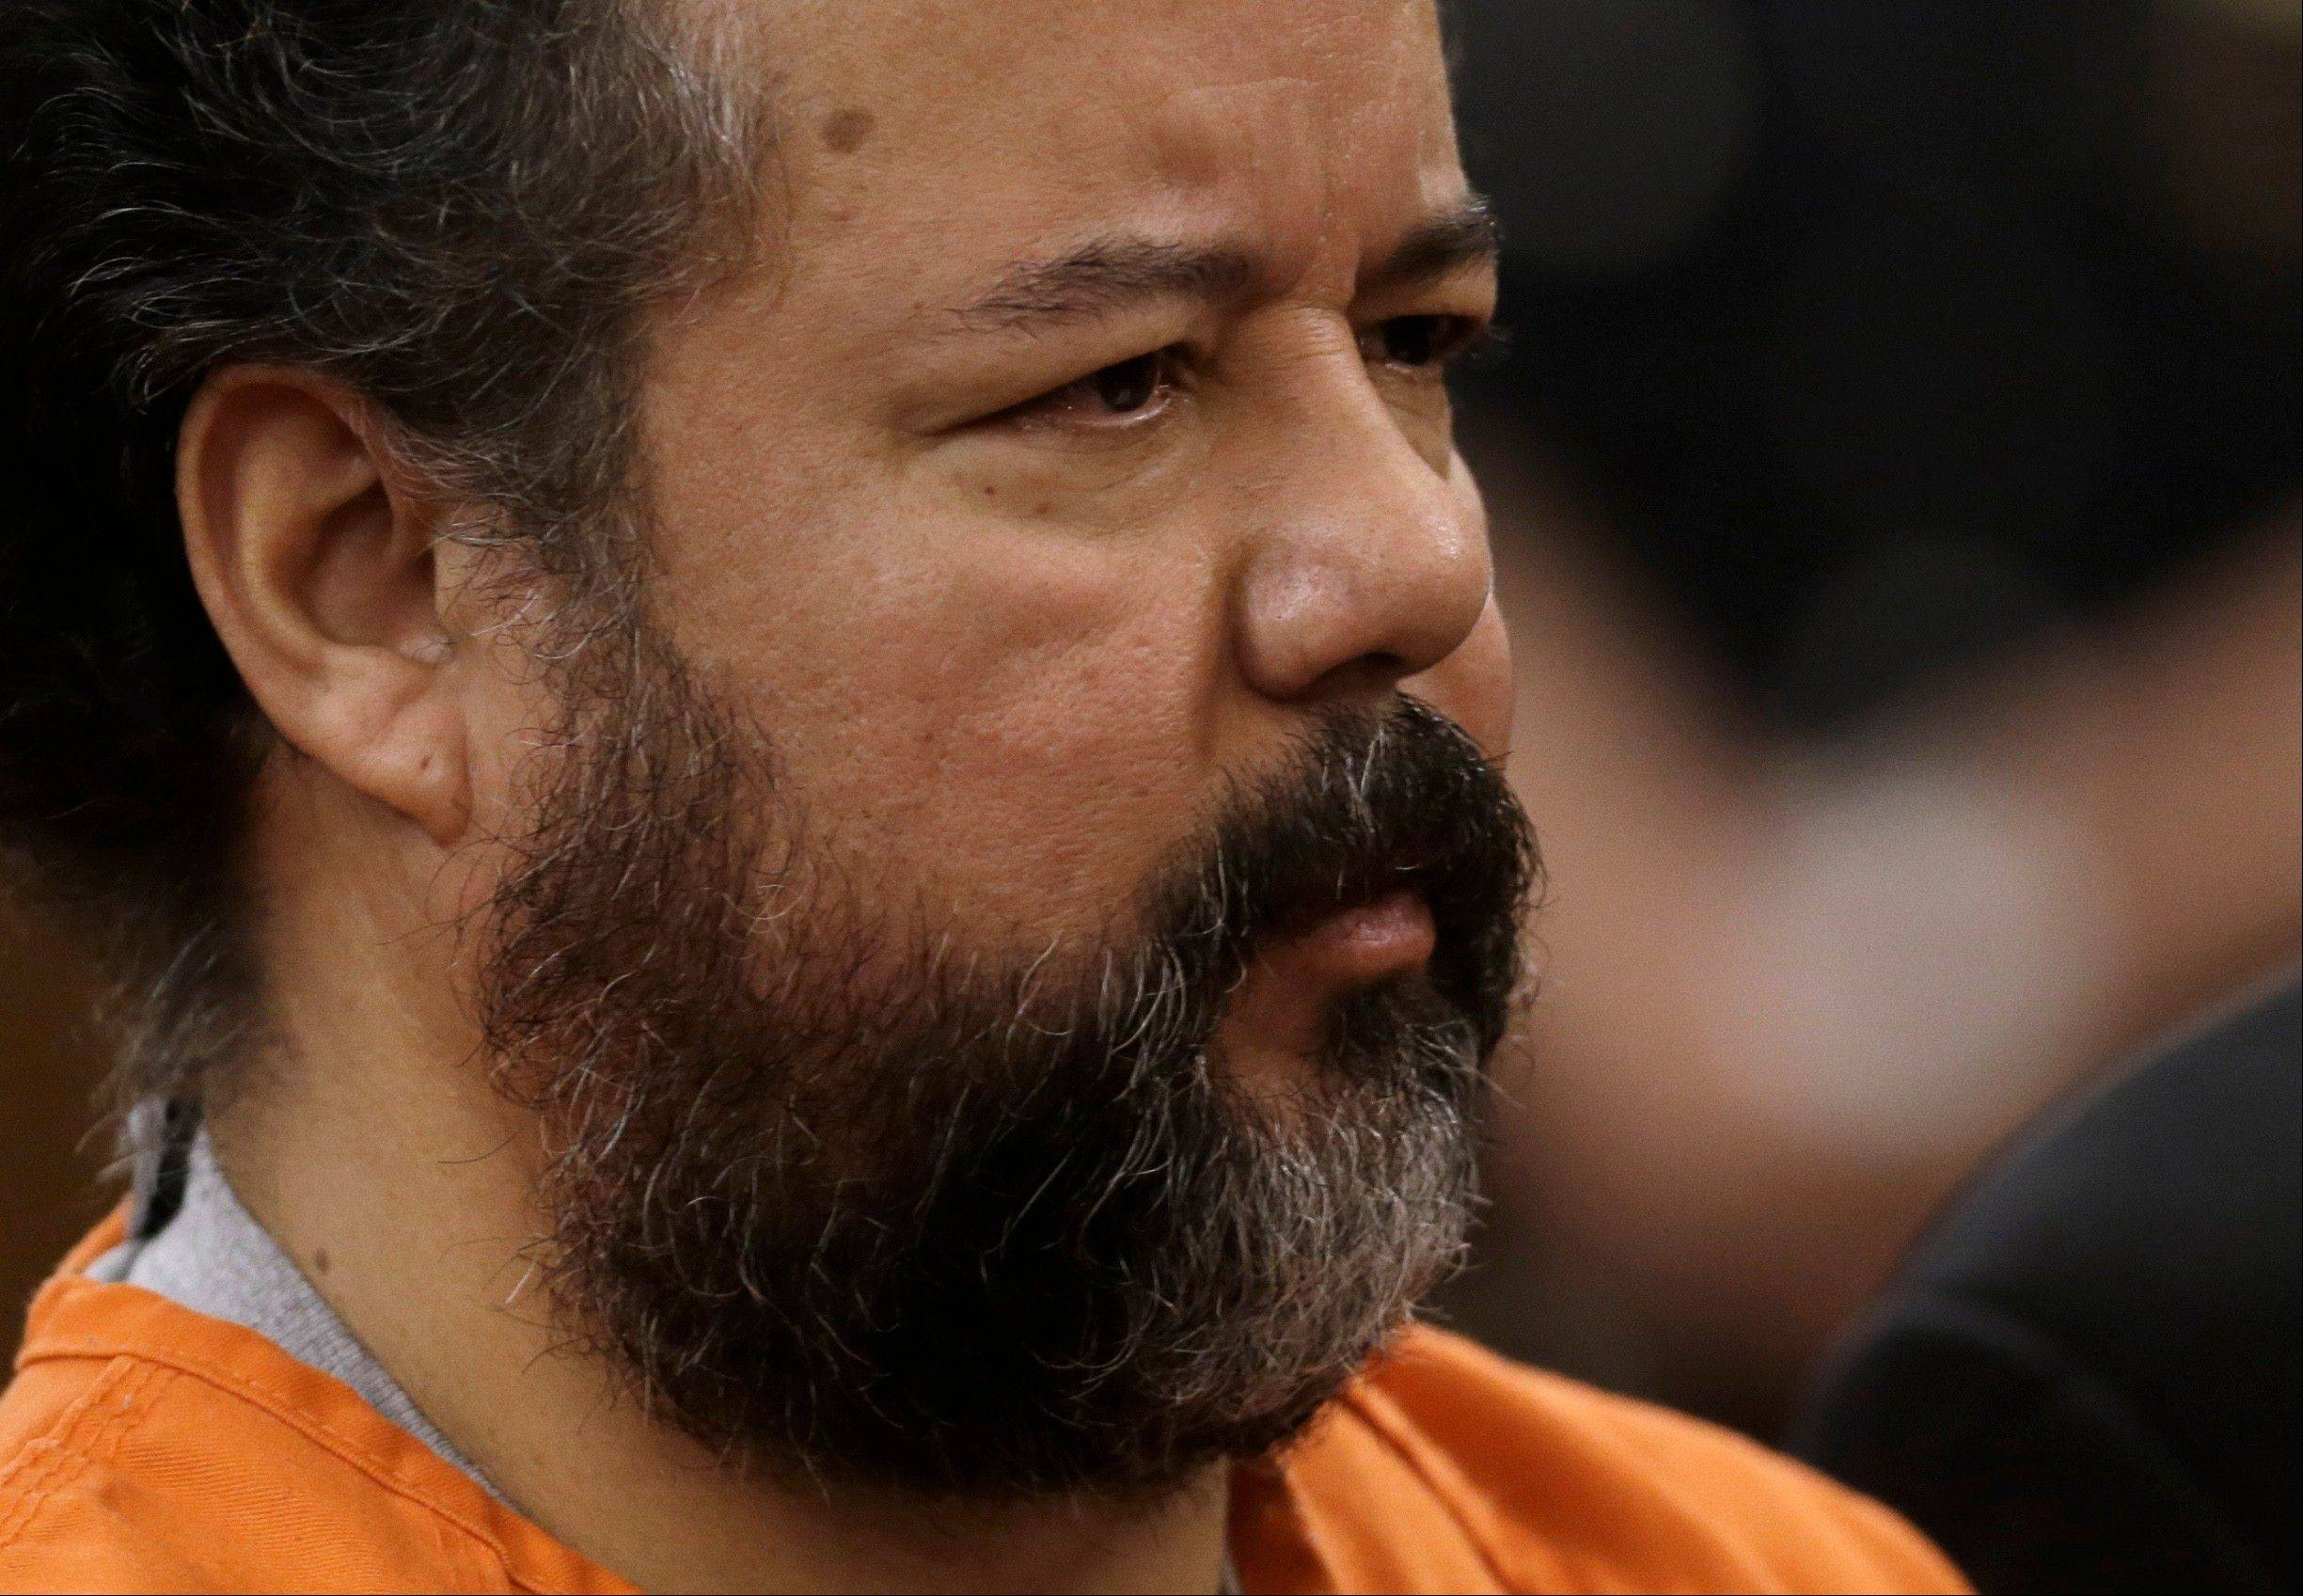 Ariel Castro pleads guilty in Ohio kidnapping case